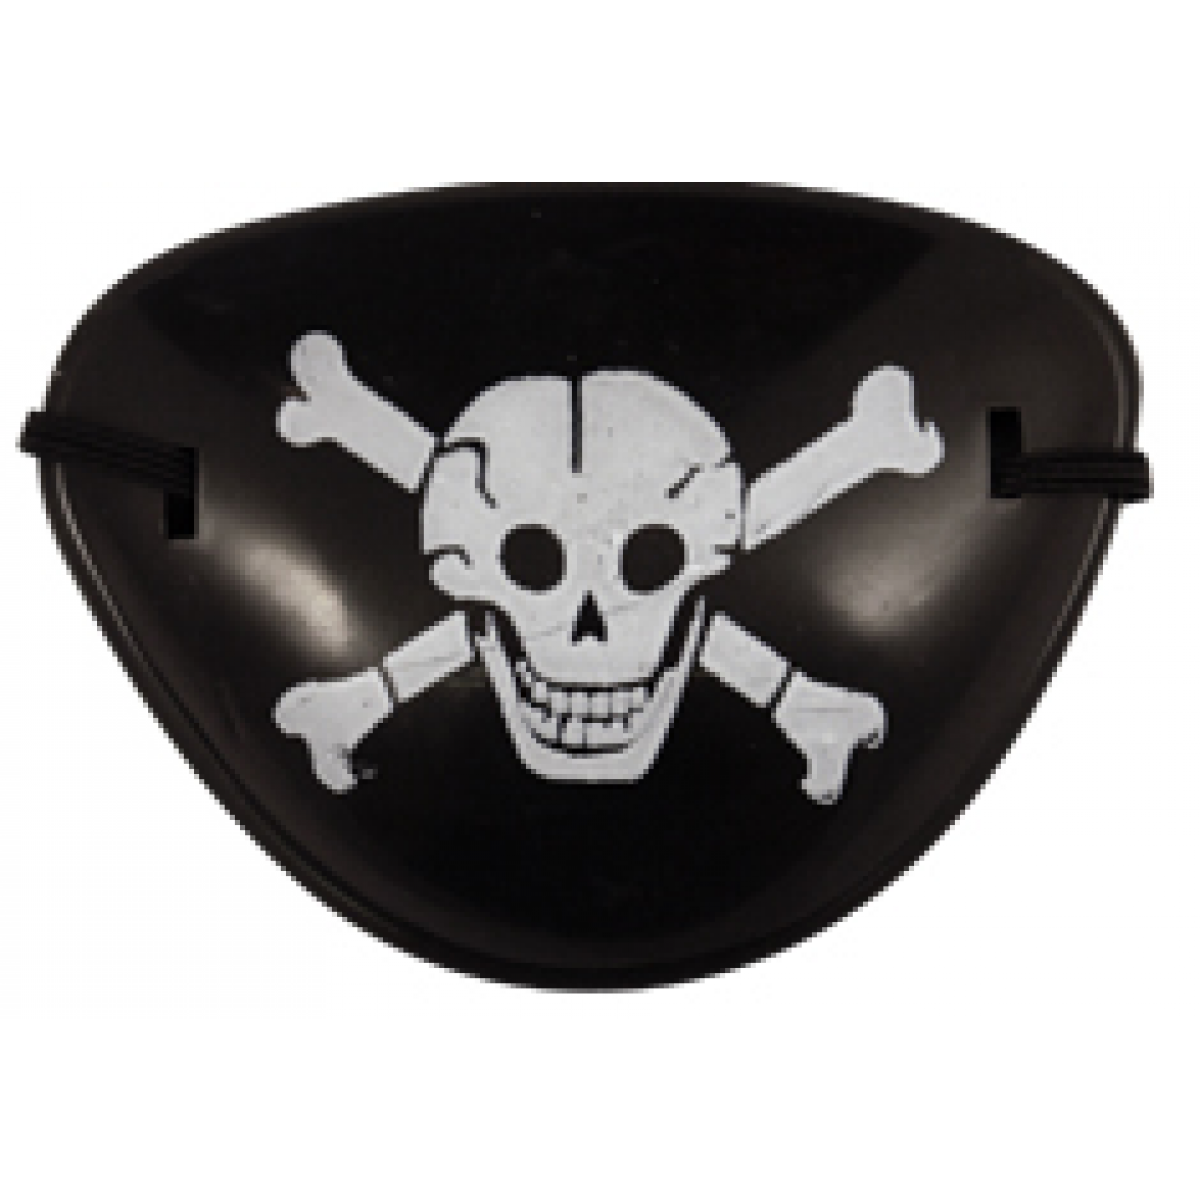 Eyepatch transparent one eye. Pirate patch more views